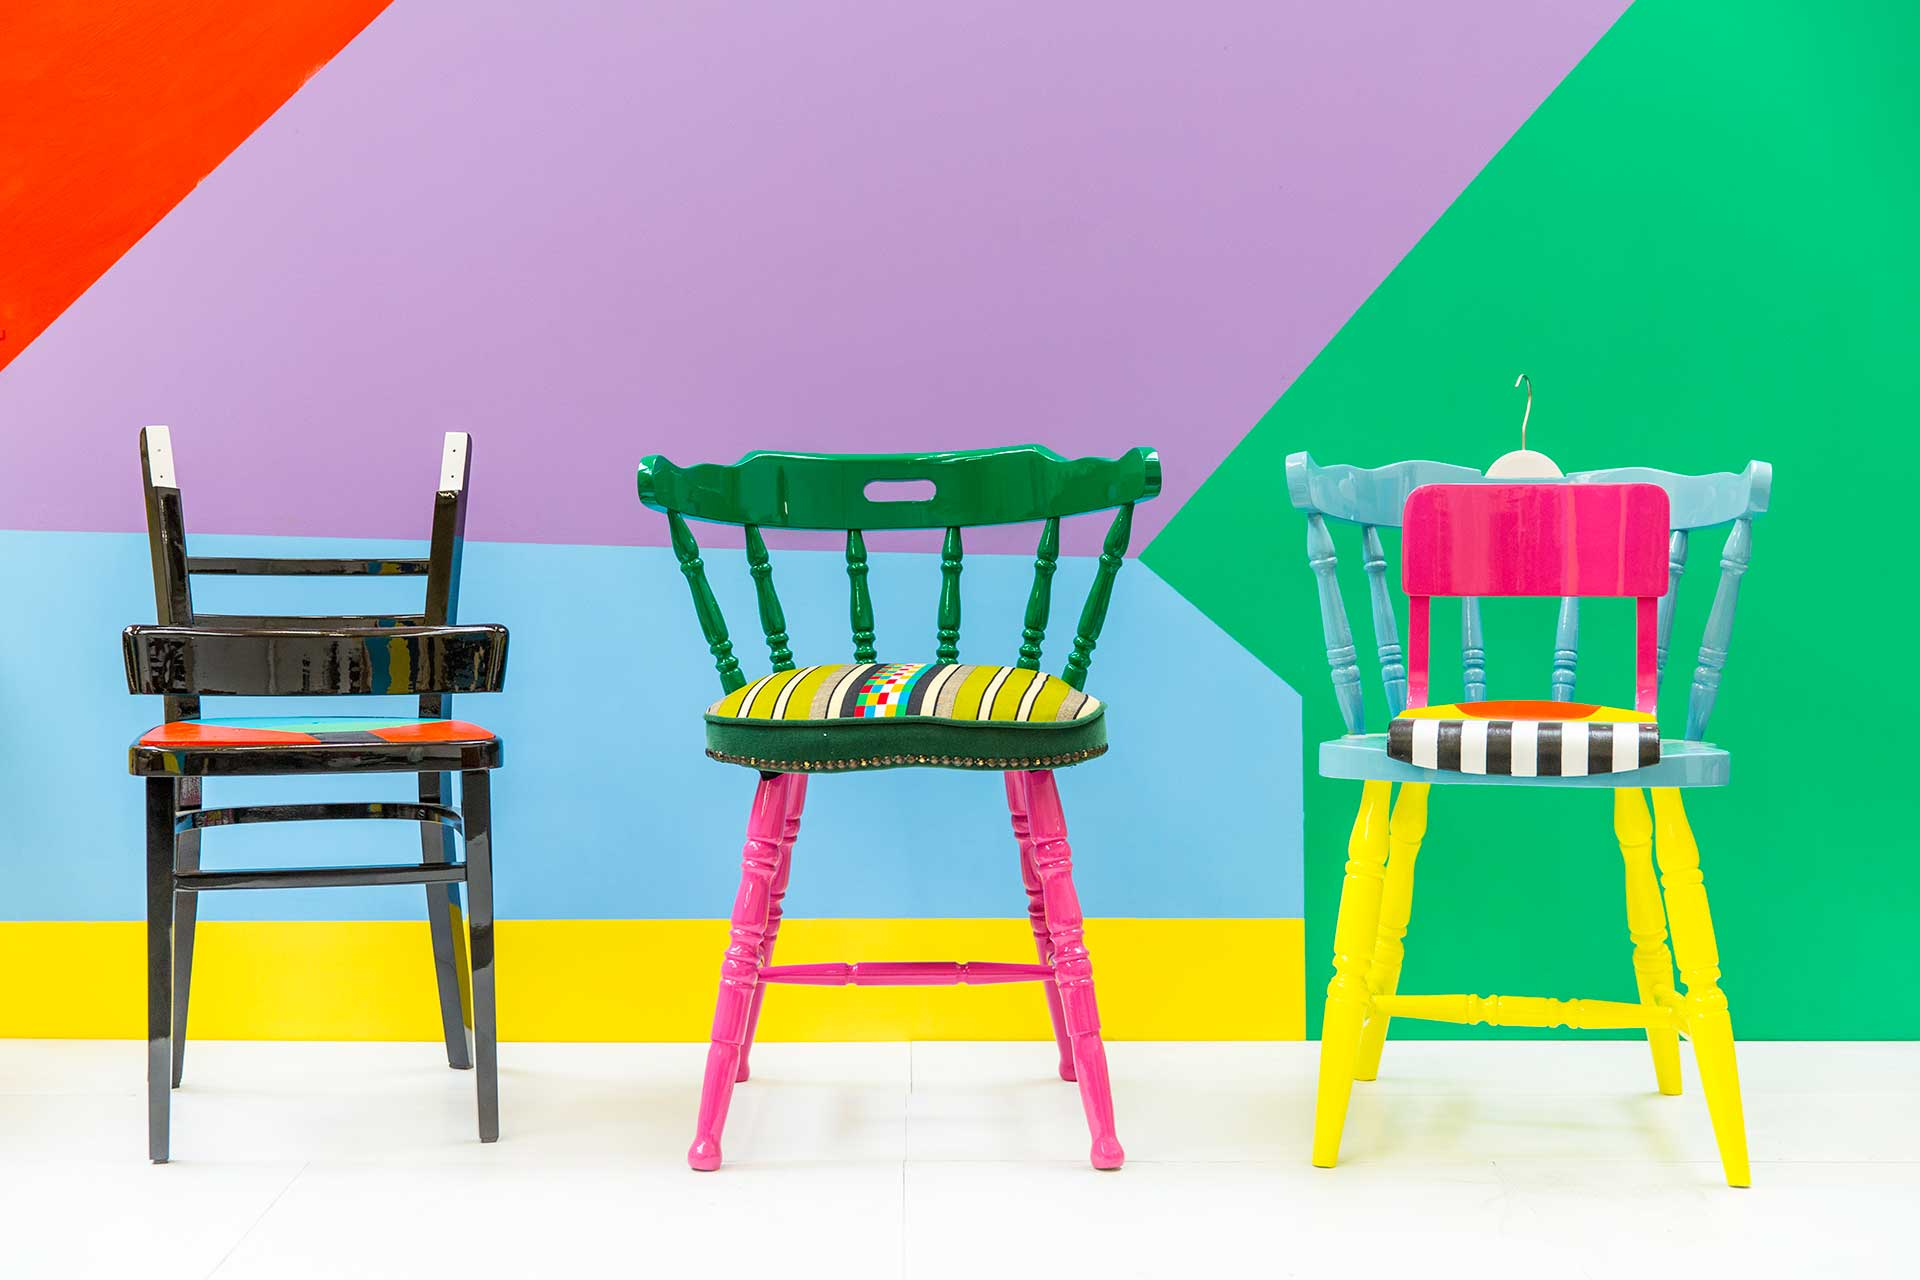 Three brightly colored chairs lined up in front of a multi-colored wall.